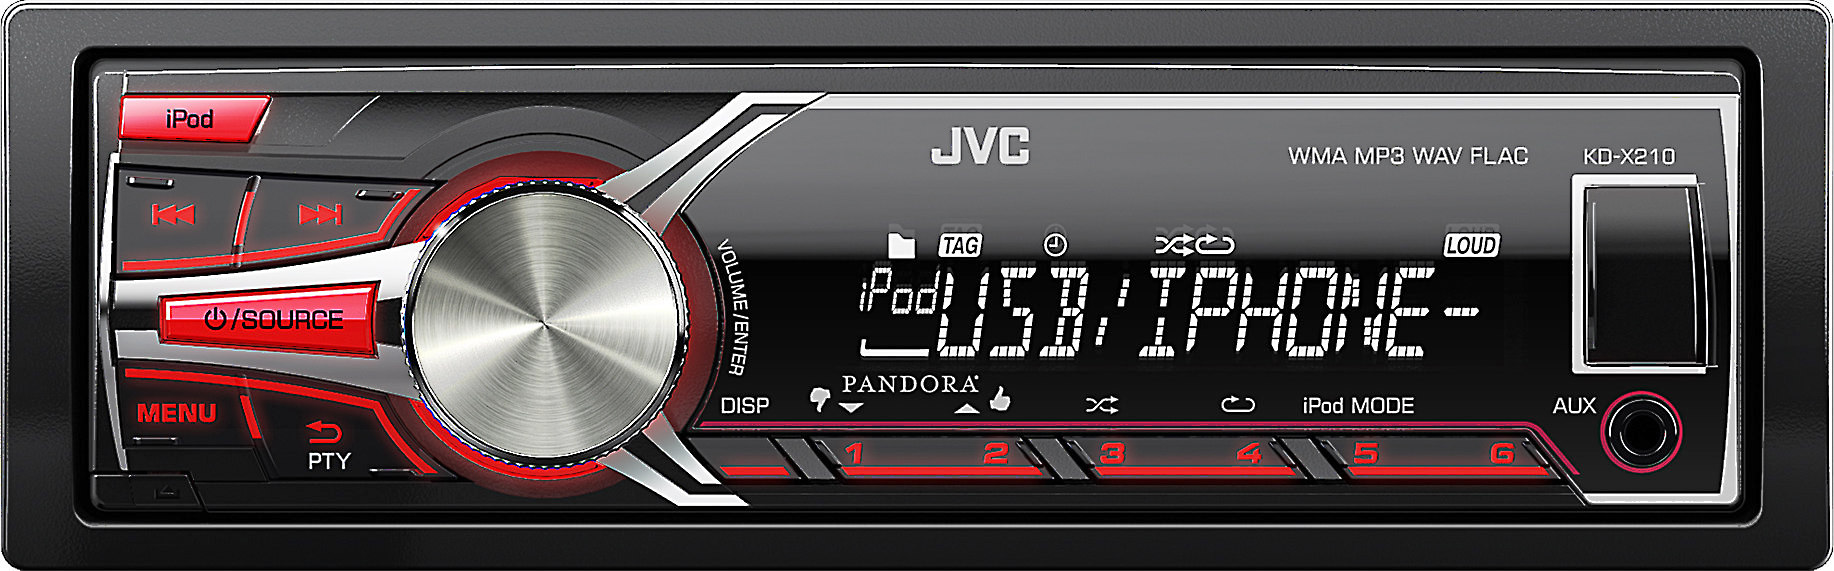 hight resolution of jvc kd dv9406 array jvc kd x210 digital media receiver at crutchfield com rh crutchfield com array jvc manual